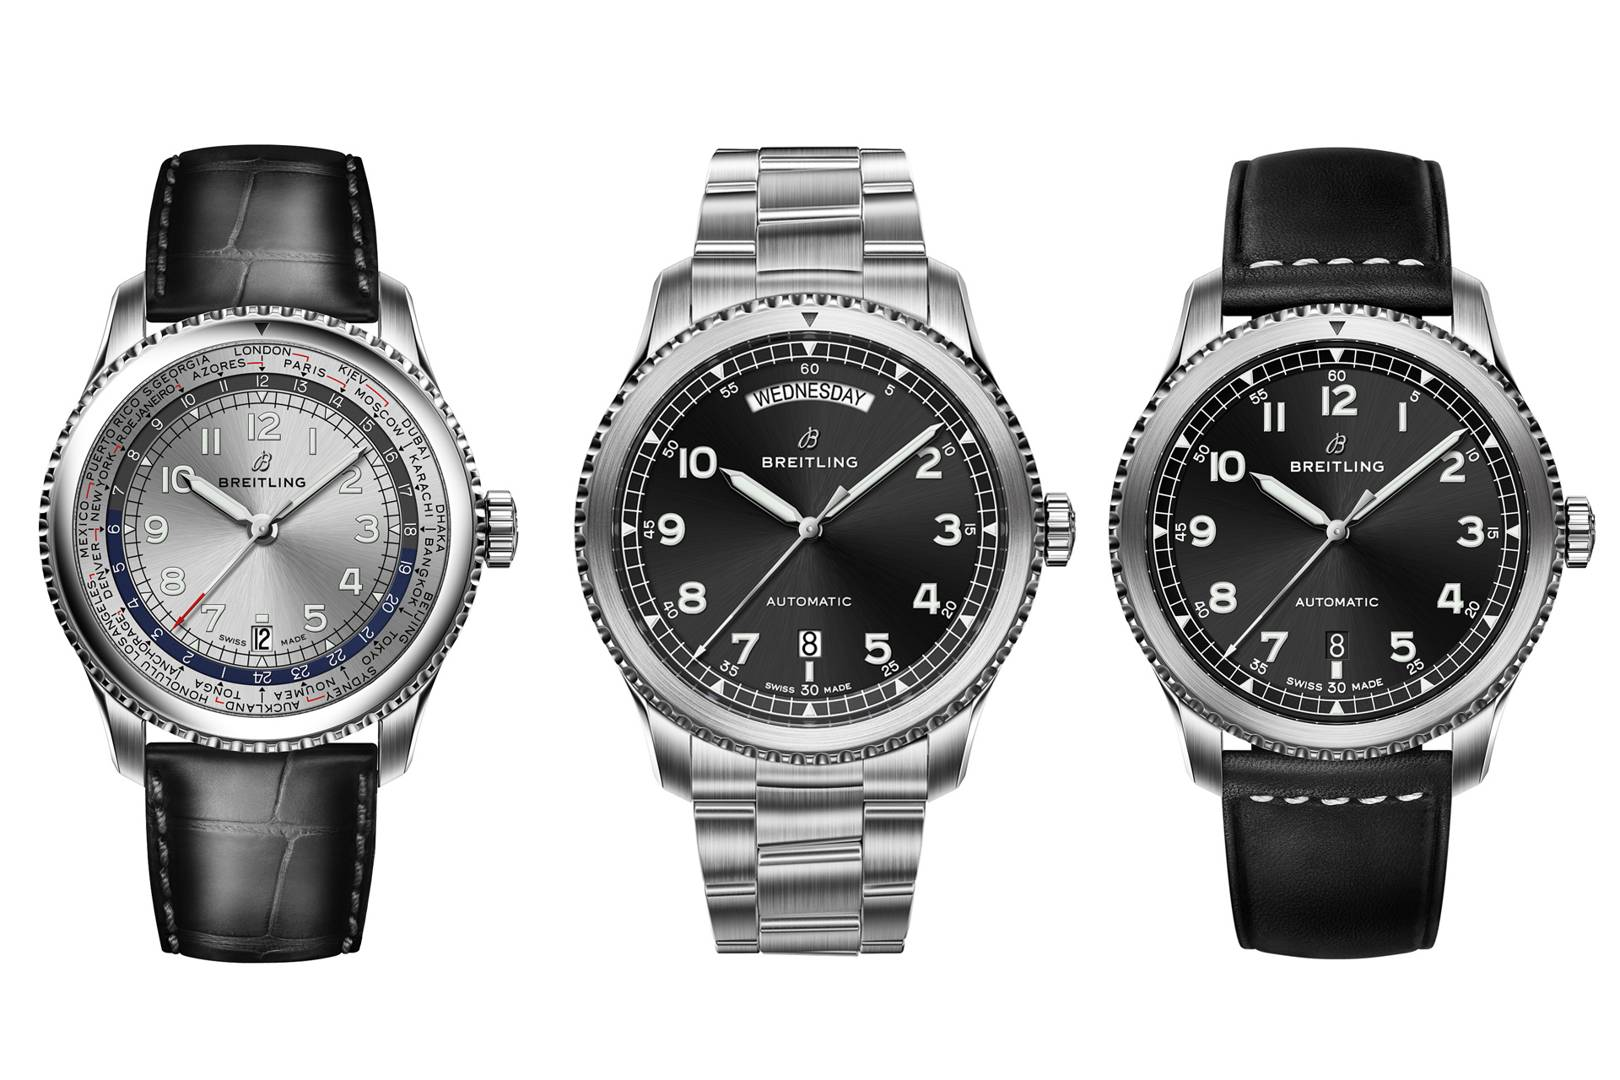 0d062c8c86e Watch brand Breitling unveils its latest Navitimer collection ...